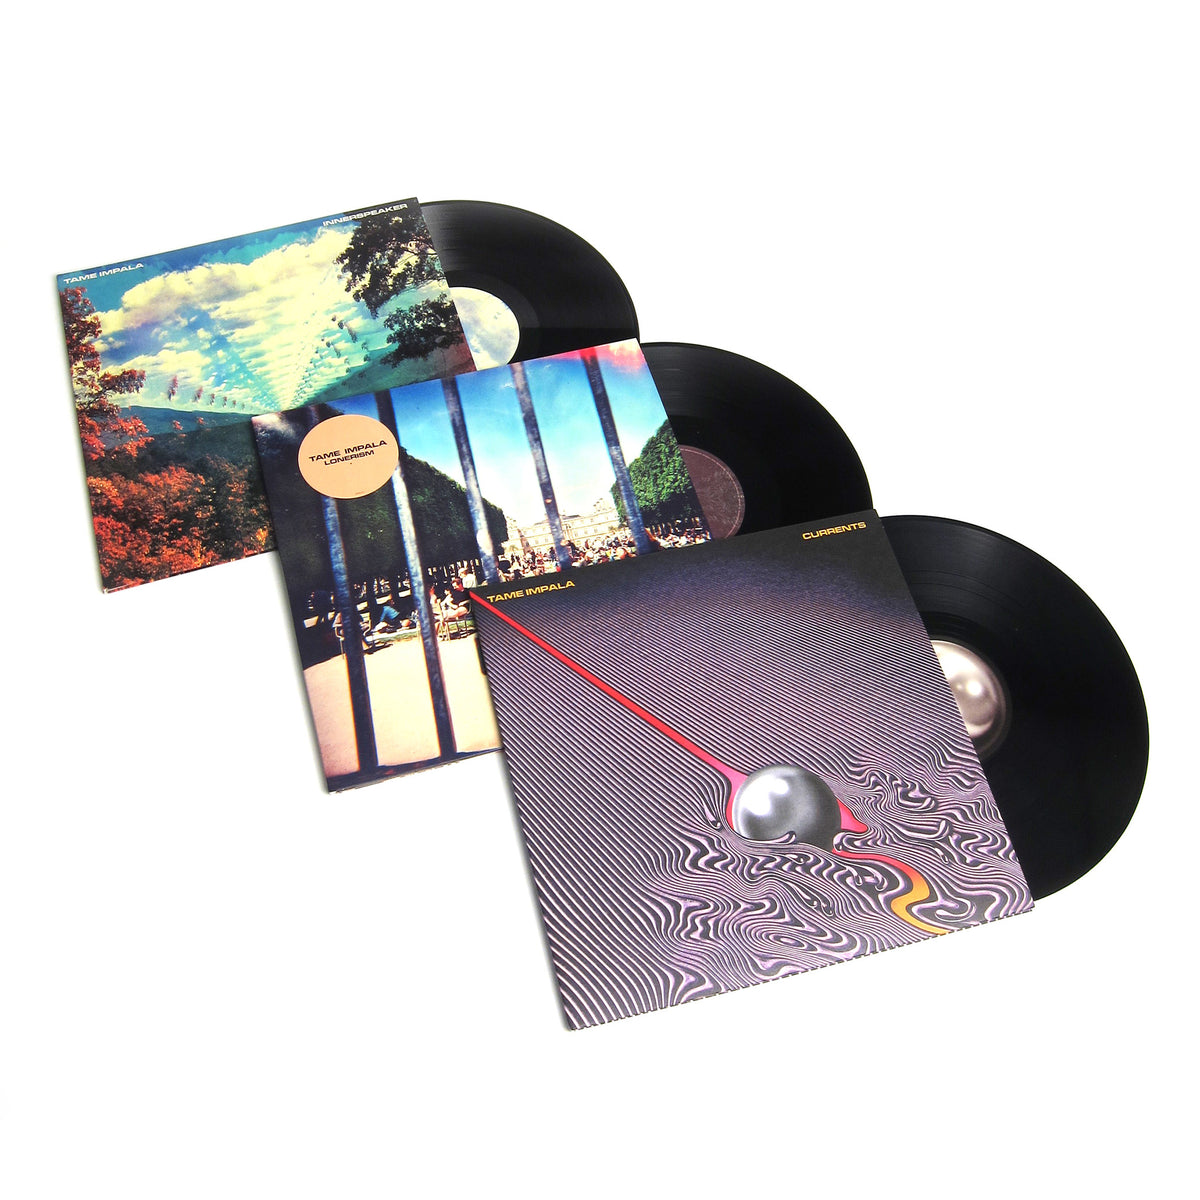 Tame Impala: Vinyl LP Album Pack (Innerspeaker, Lonerism, Currents)